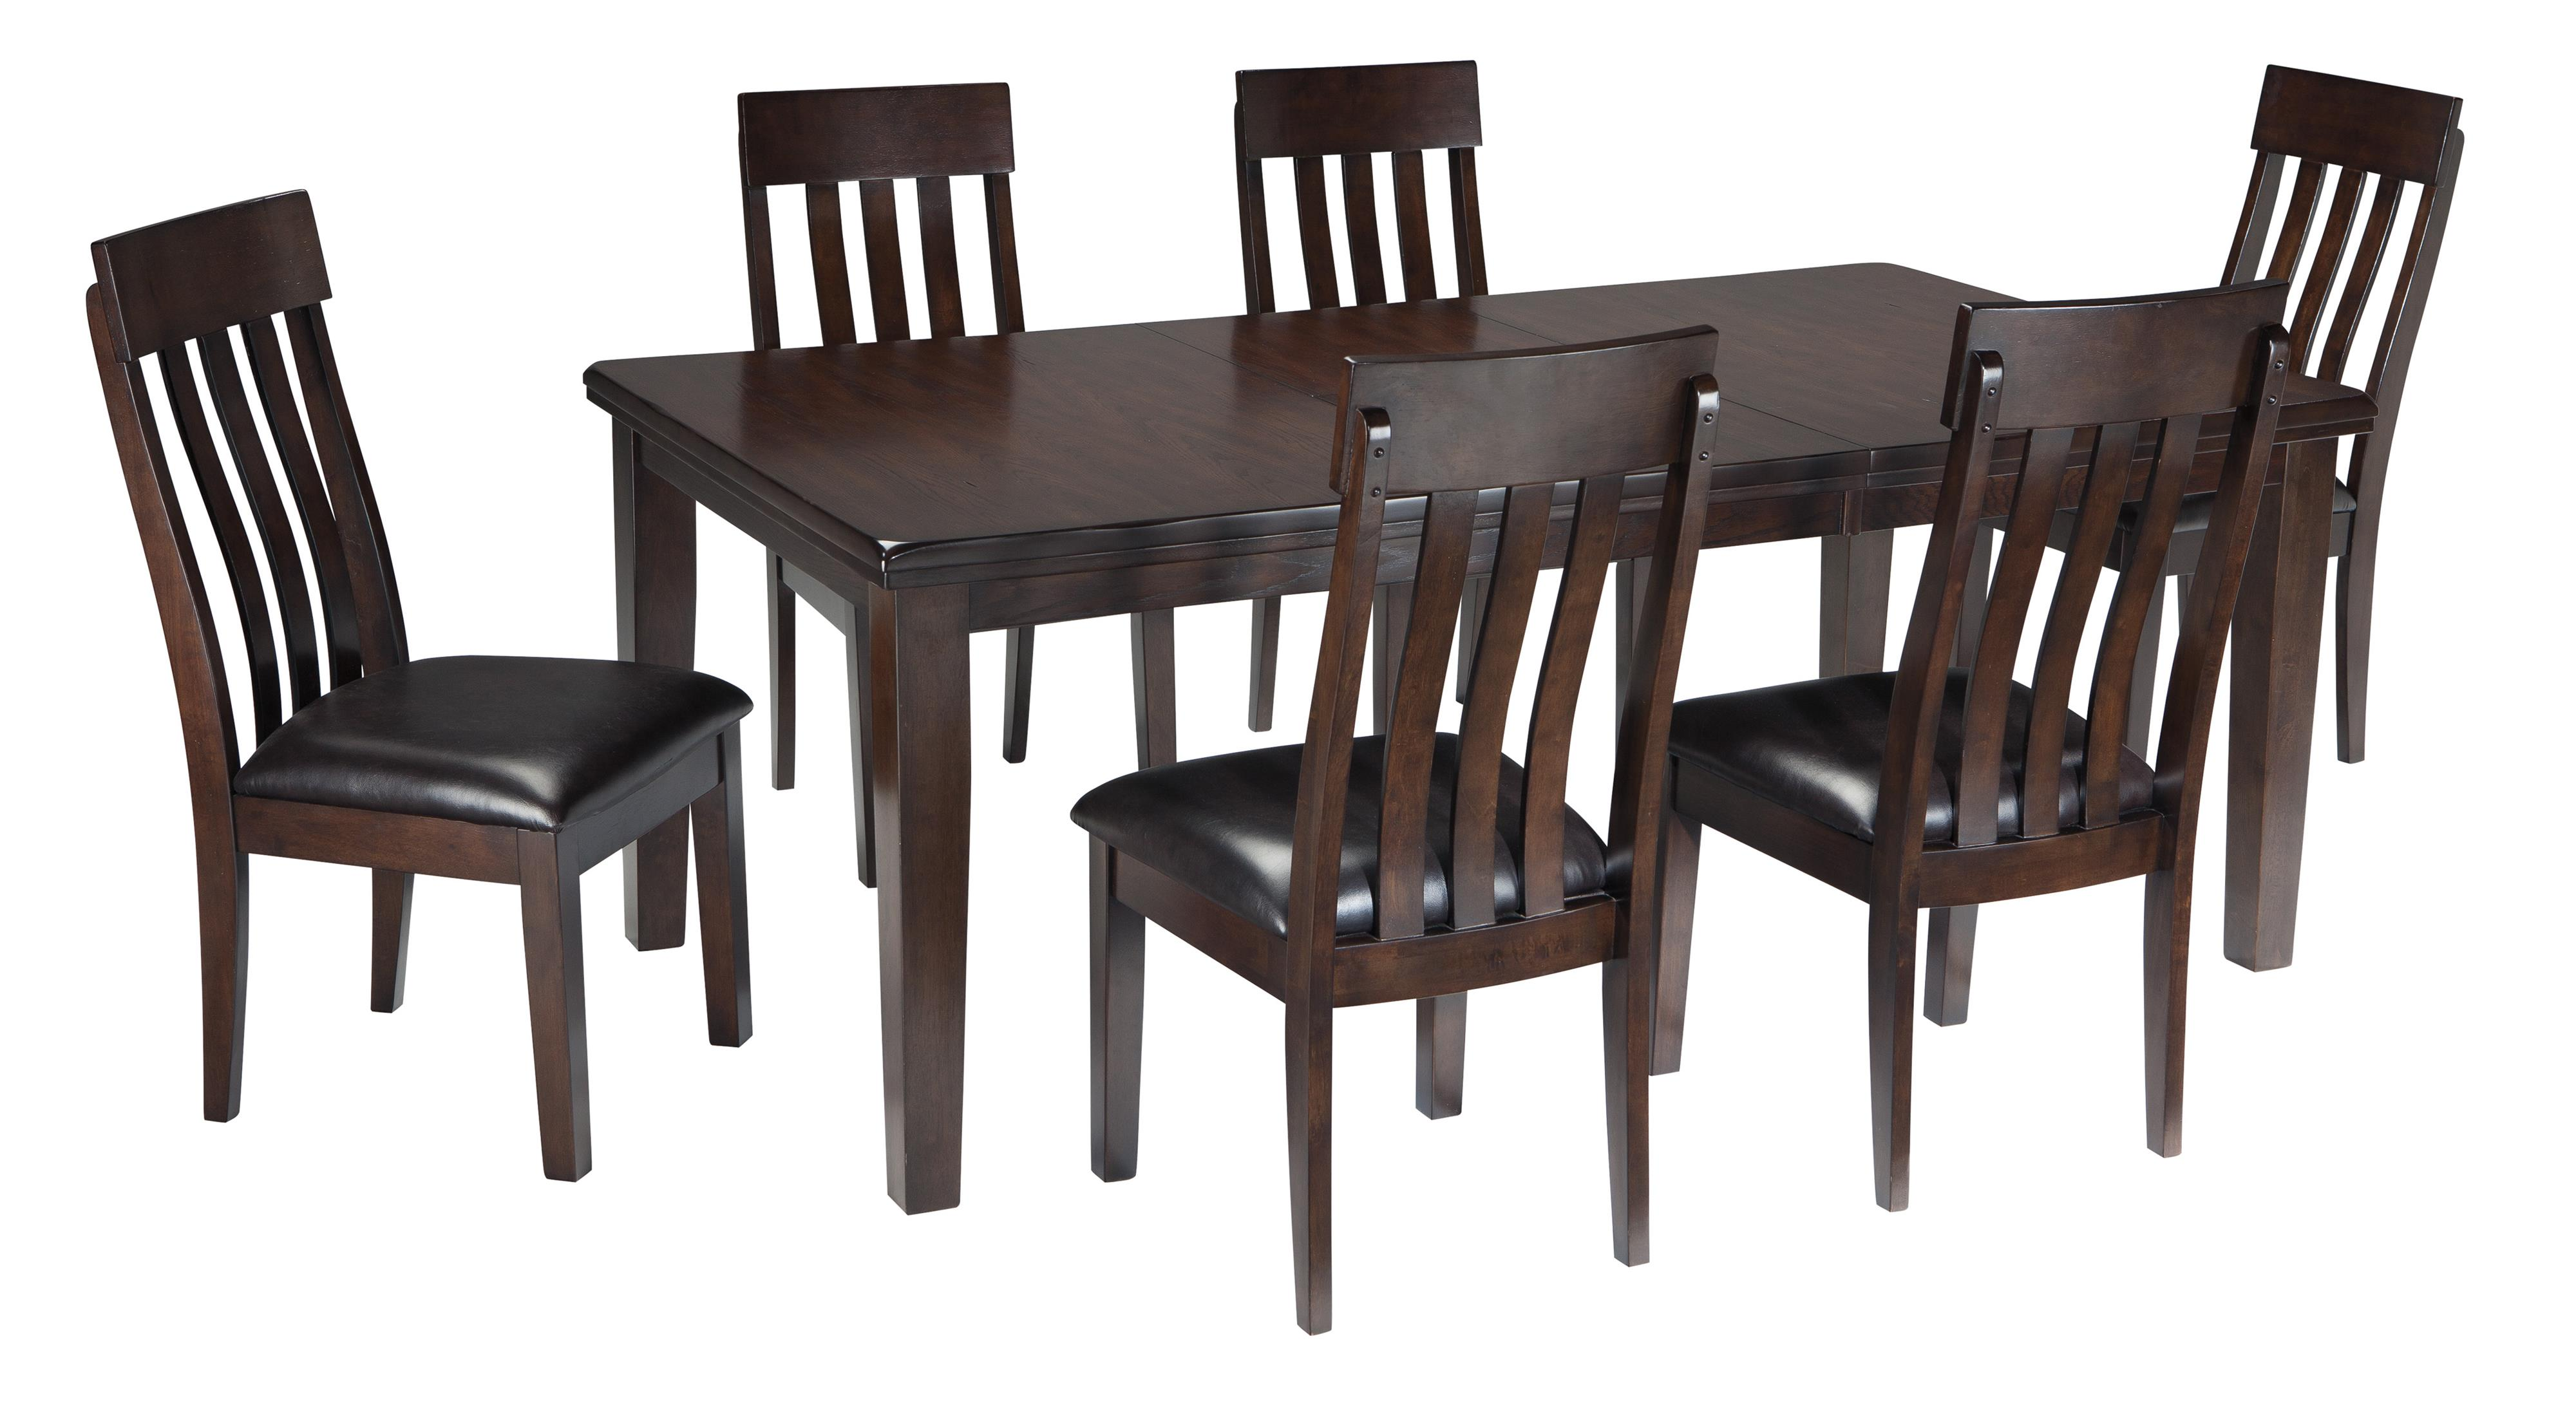 Haddigan 7-Piece Dining Room Table & Side Chair Set by Signature Design by Ashley at Sparks HomeStore